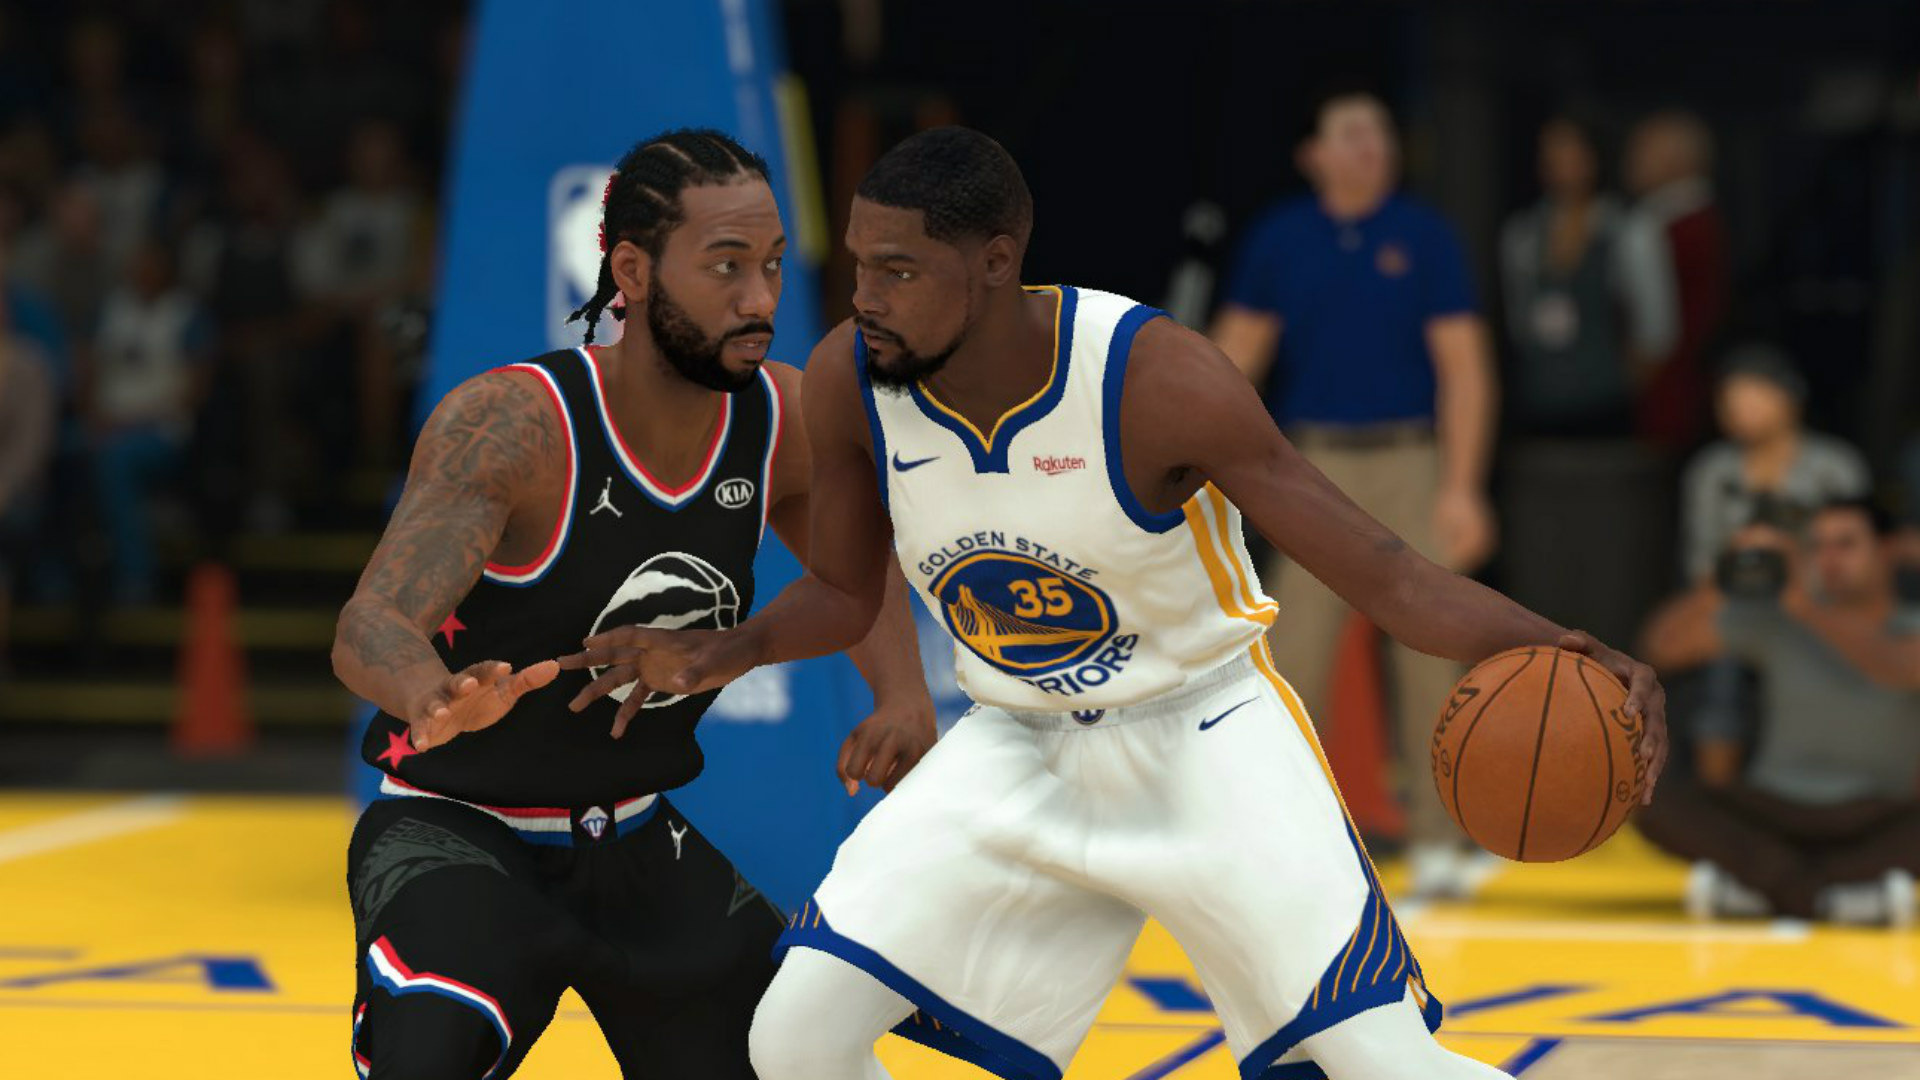 Celebrity nba all star game 2019 wiki